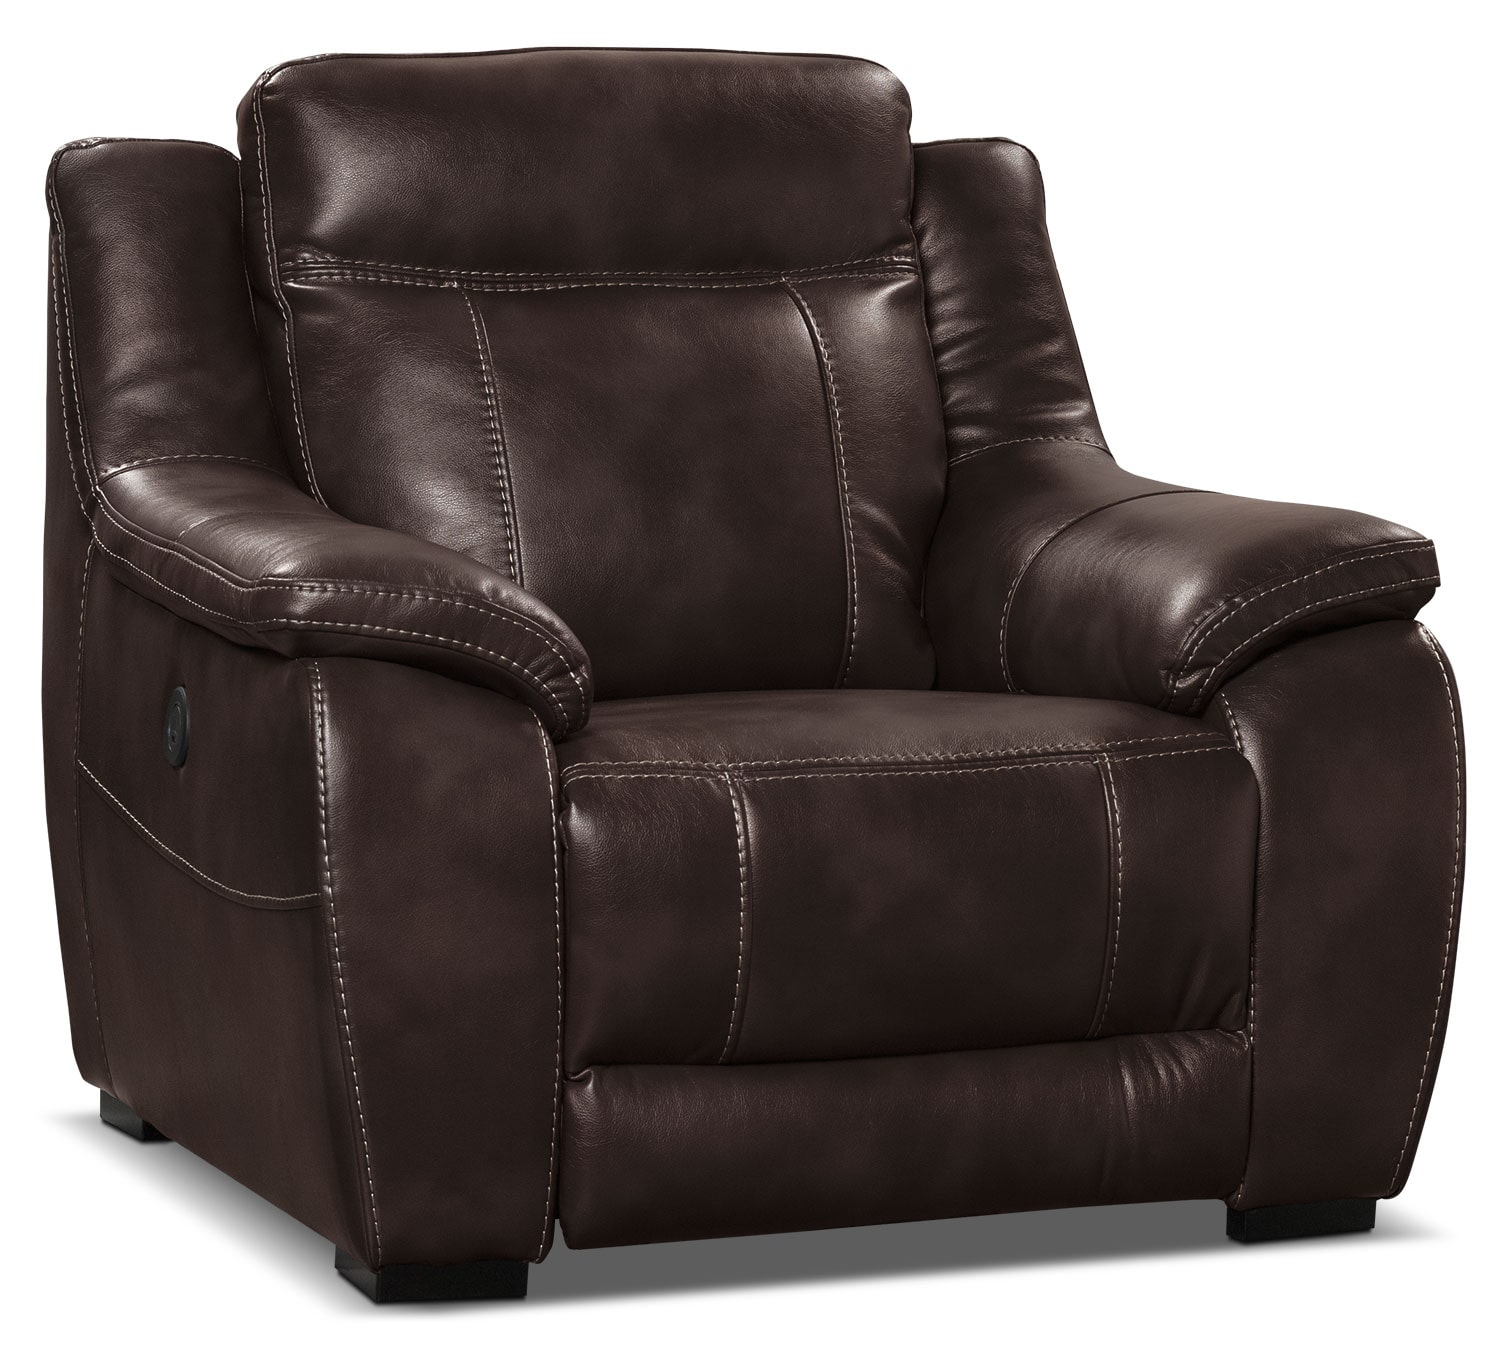 Novo Leather-Look Fabric Power Reclining Chair – Brown